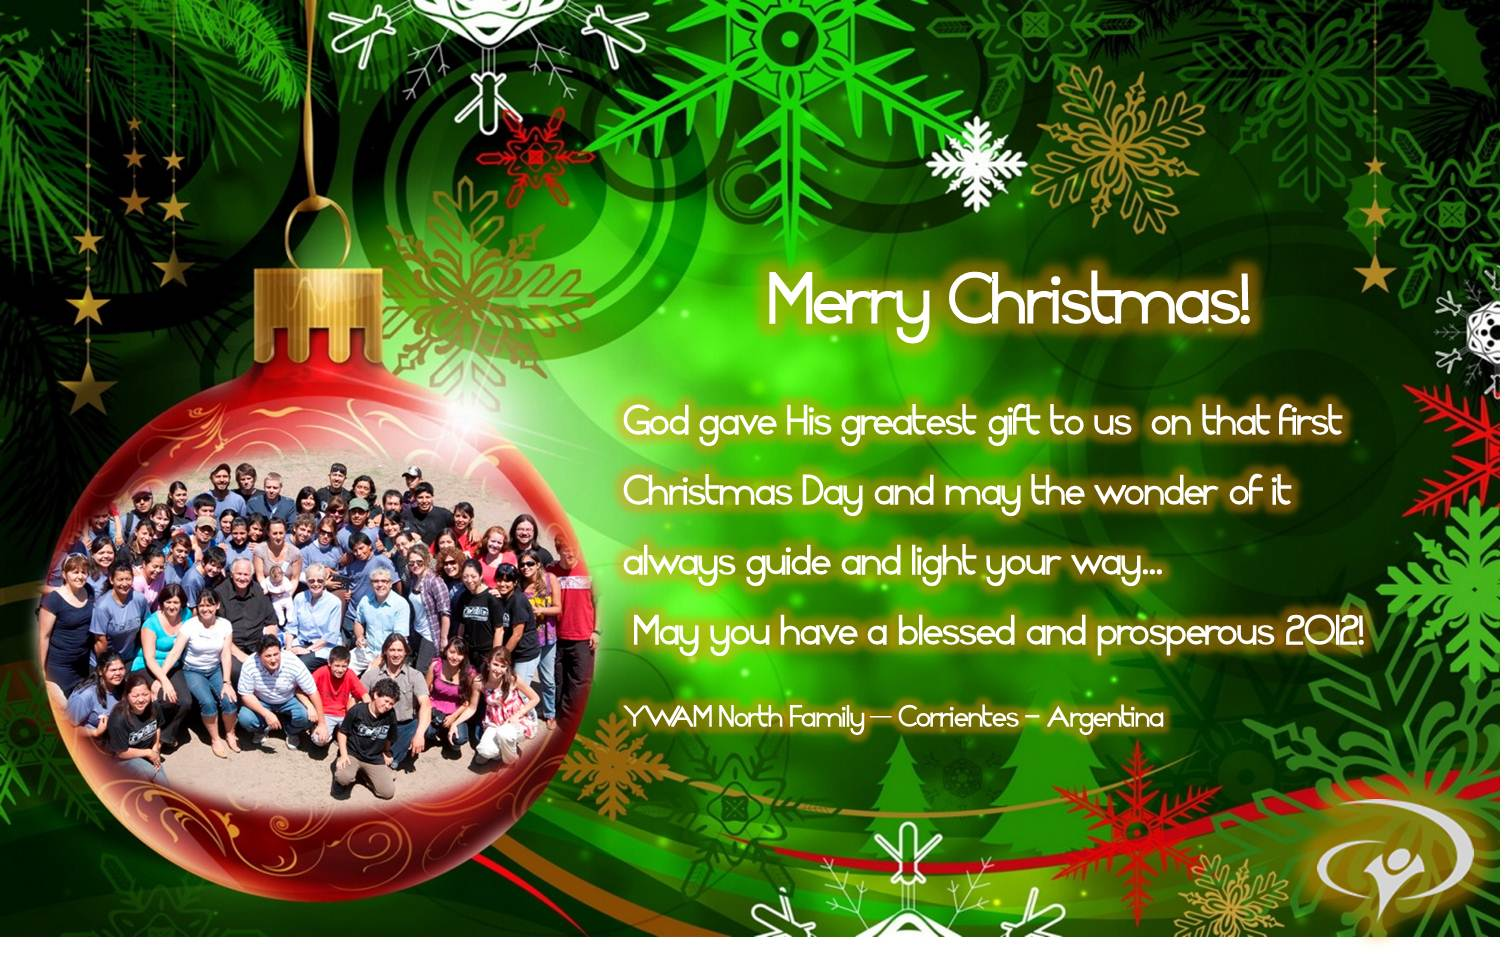 Christmas greetings pictures time to celebrate christmas christmas greeting messages or pictures m4hsunfo Gallery